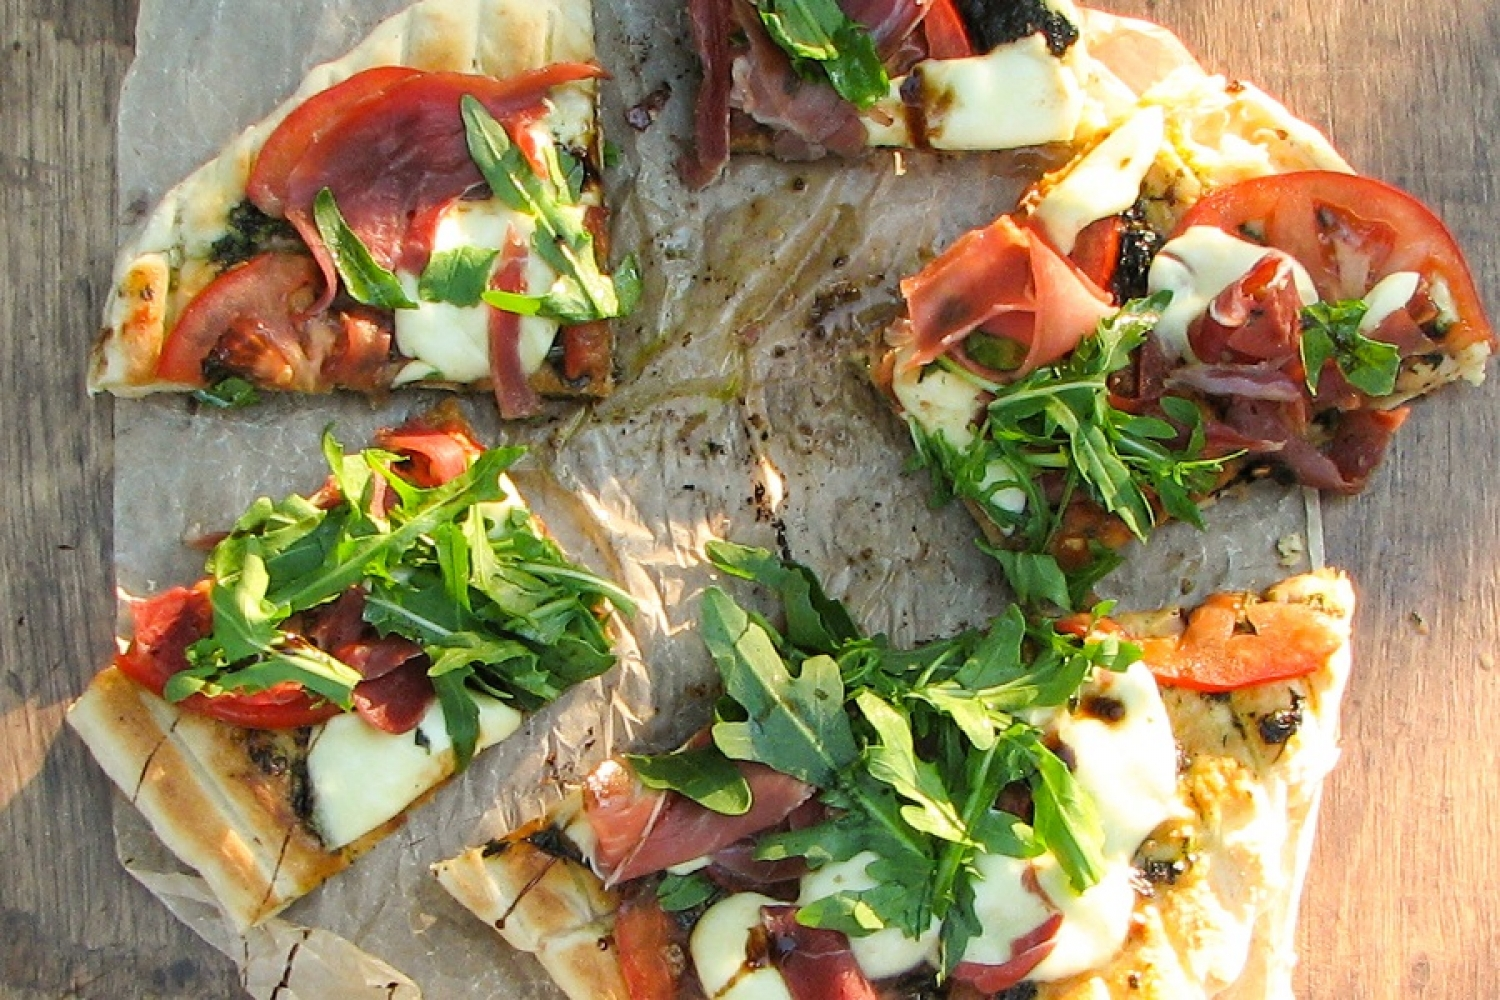 Picnic: how to cook pizza at the stake - foto 1578